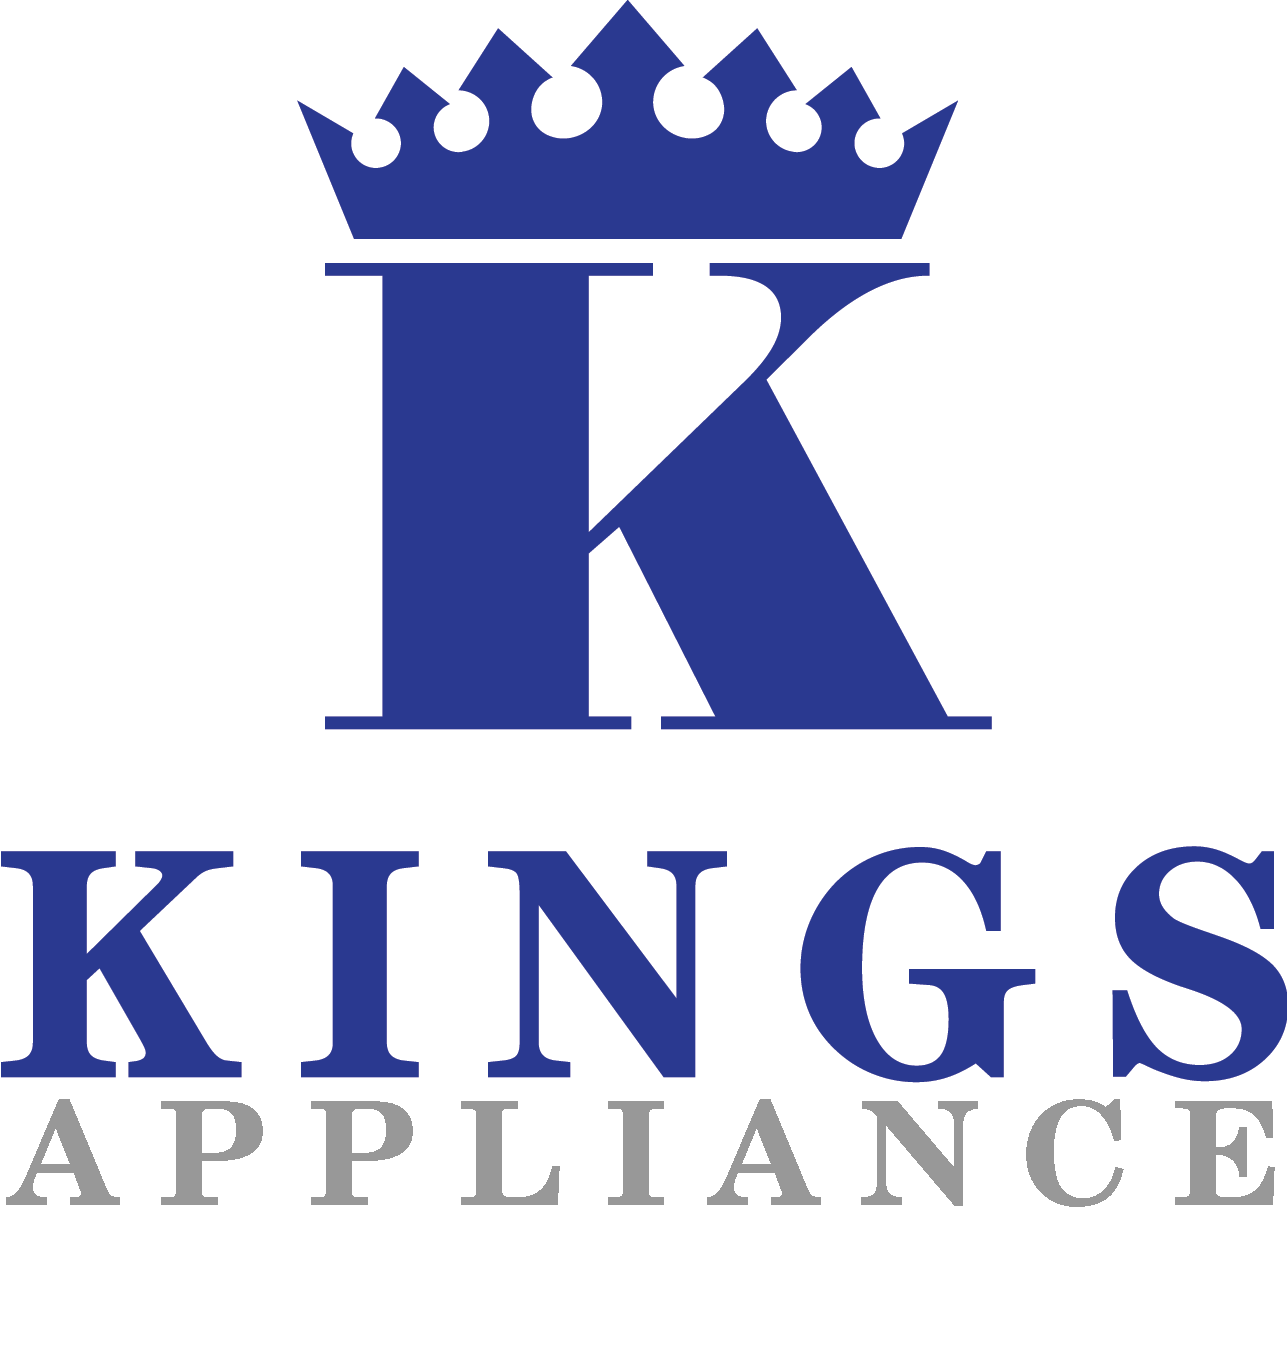 King's Appliance logo